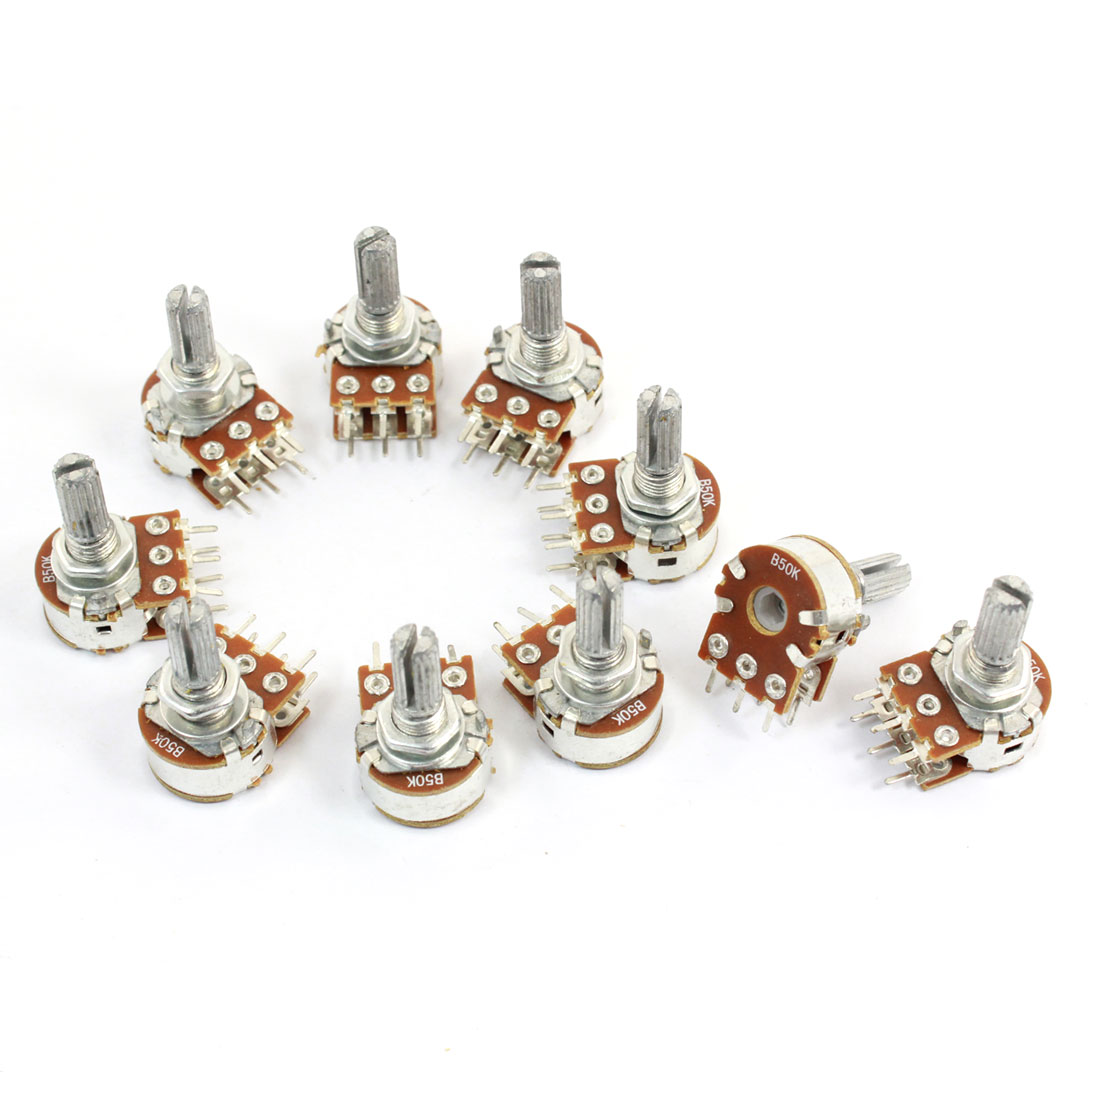 10 Pcs B50K Ohm Knurled Shaft Adjustable Linear Potentiometers AC 250V